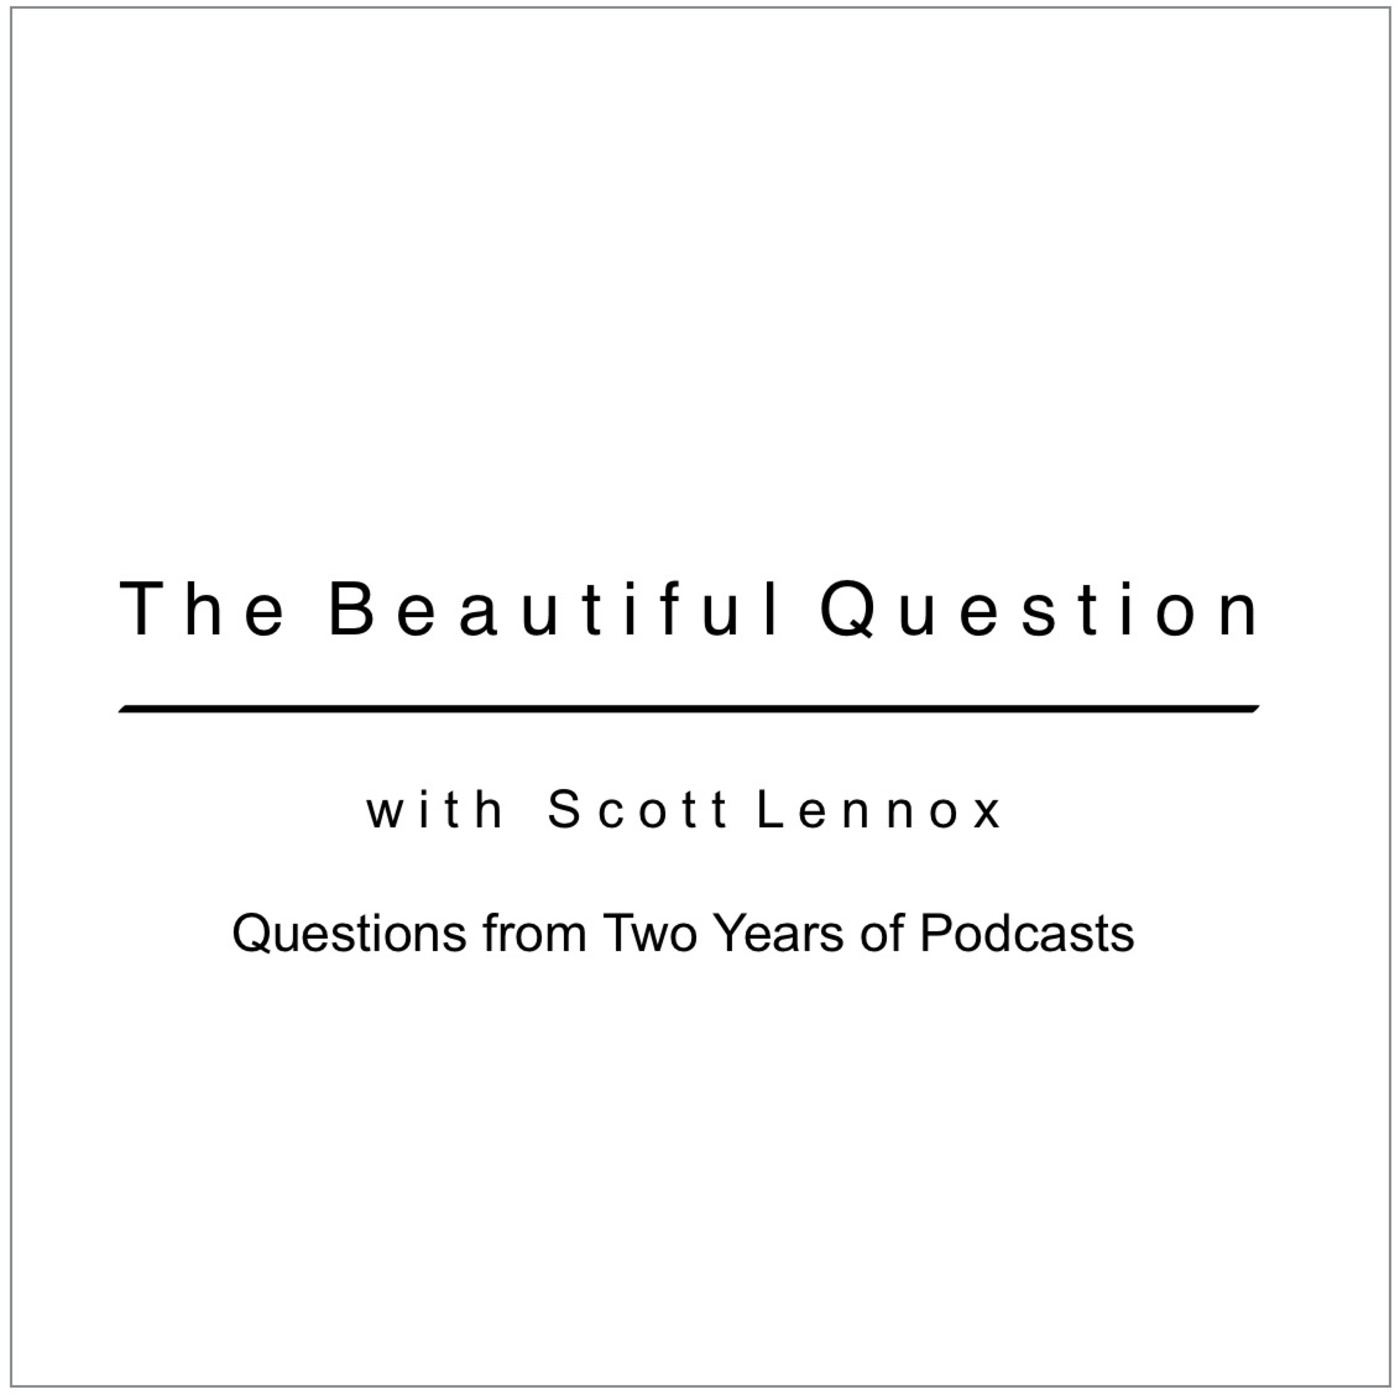 Questions from Two Years of Podcasts